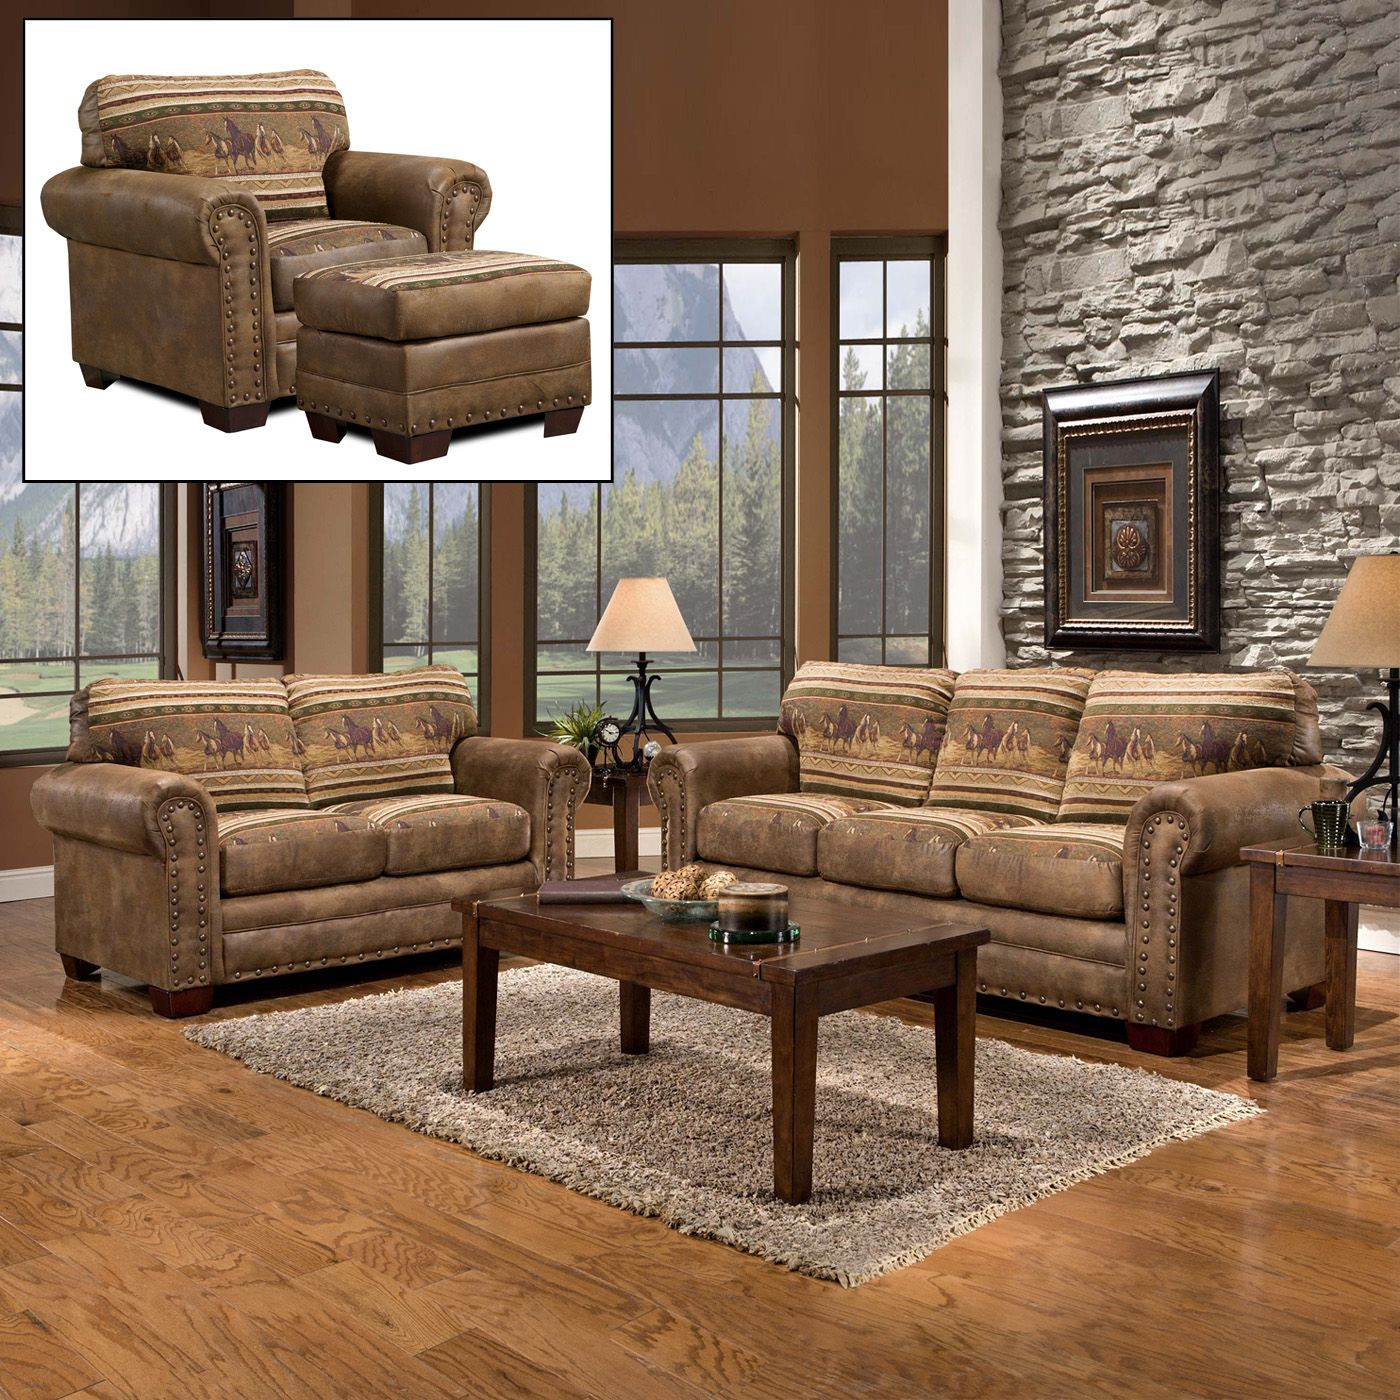 Shop American Furniture Classics American Furniture 8500 40K Wild